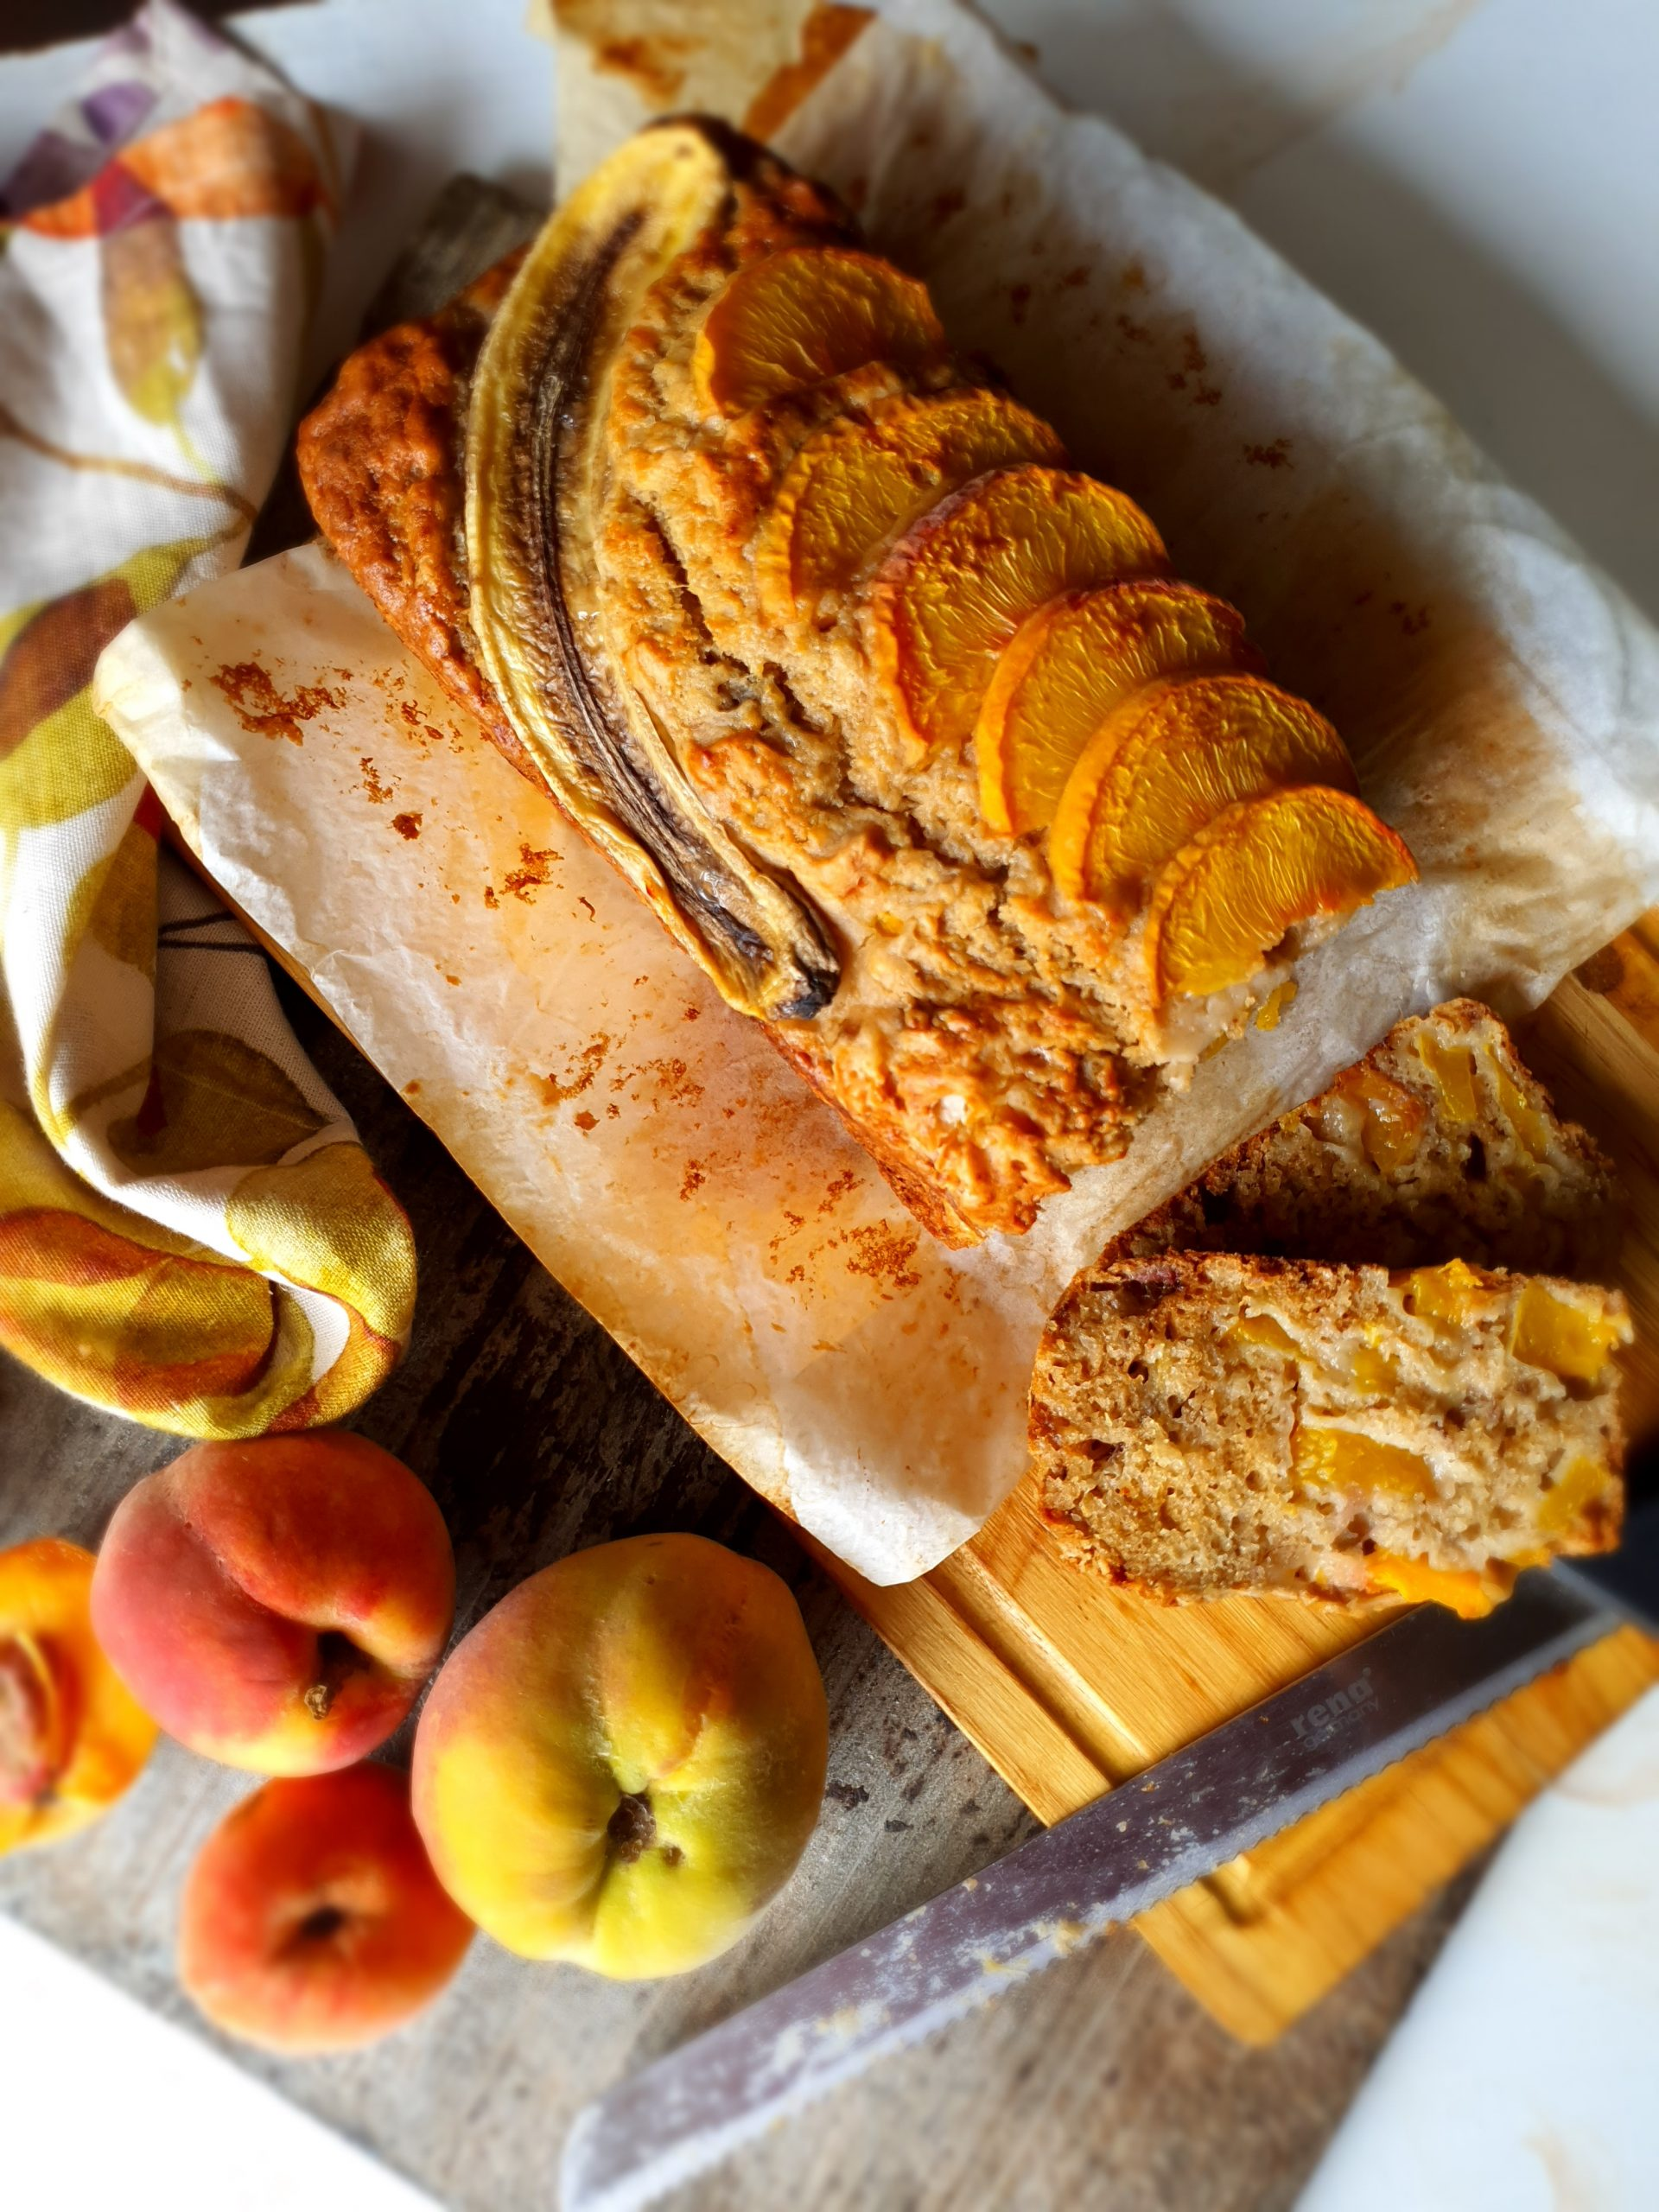 Peach and yogurt banana bread